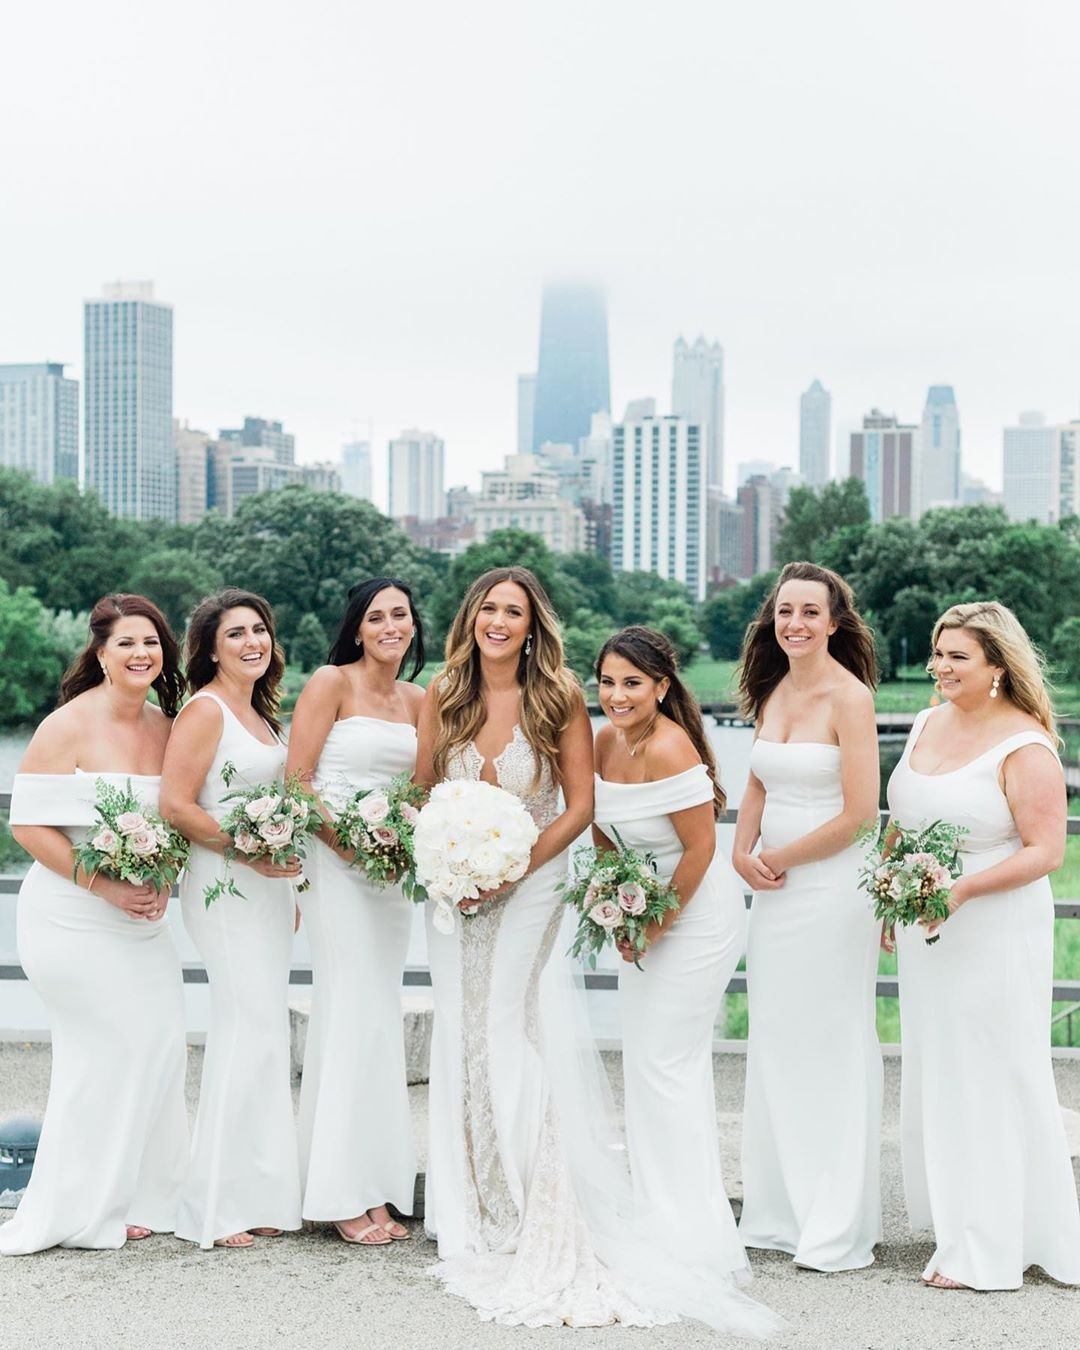 Gorgeous Chicago bridal party